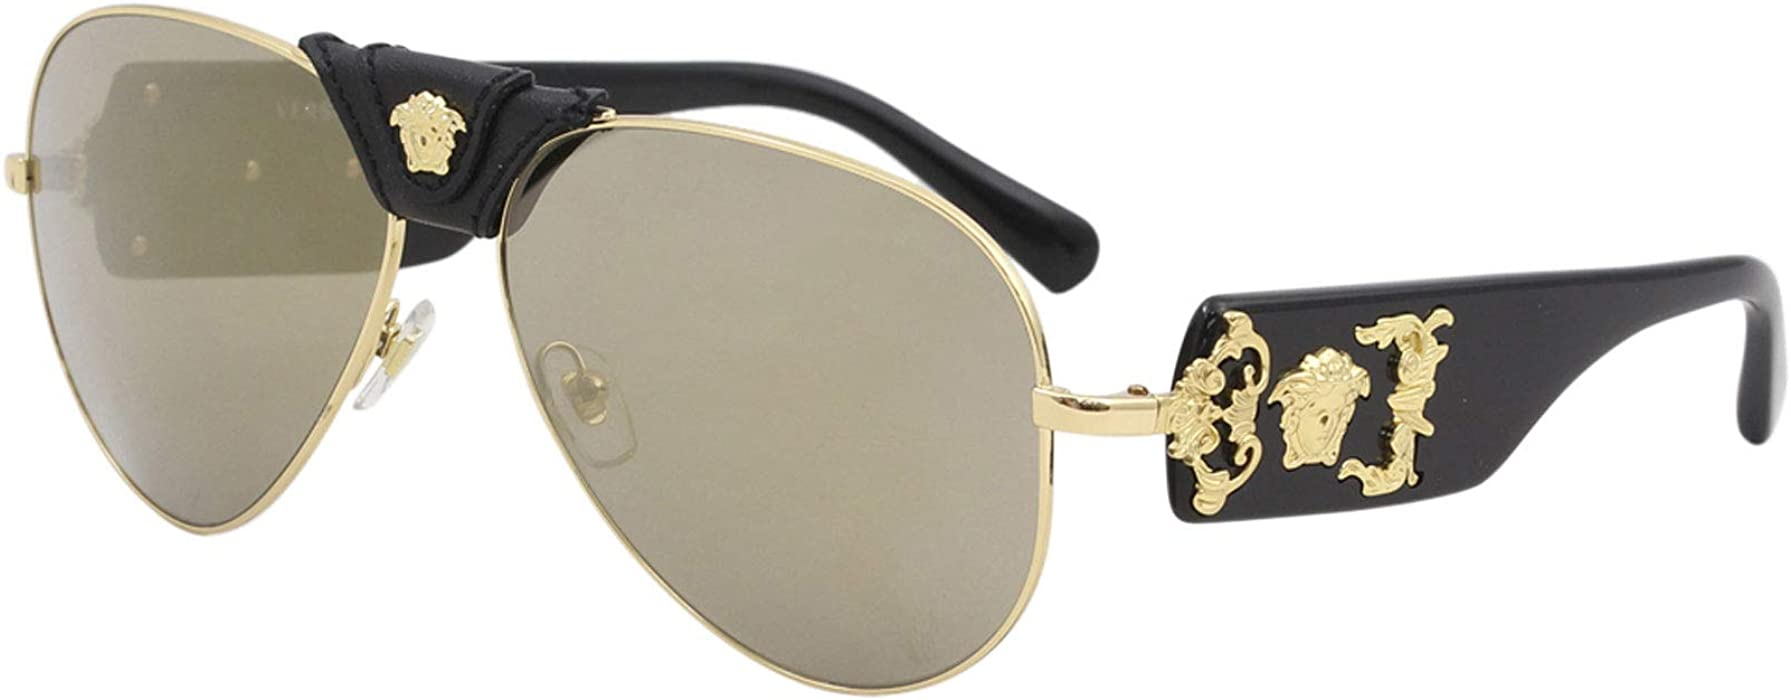 c82bca30a3 Amazon.com  Versace Mens Sunglasses Gold Brown Metal - Non-Polarized ...